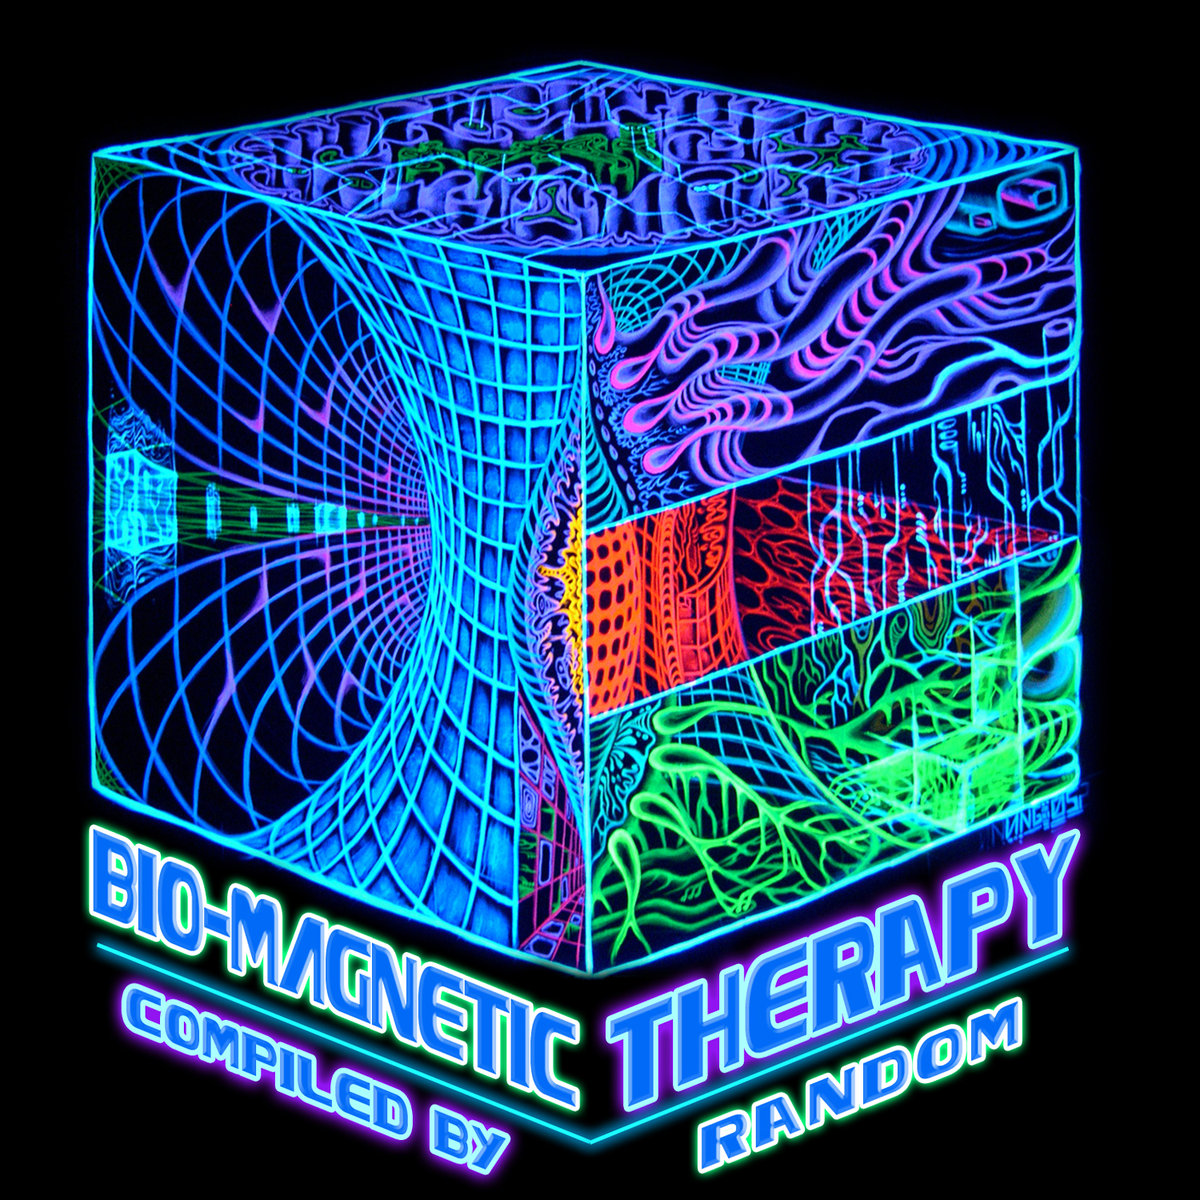 Random - The Problem @ 'Various Artists - Bio-Magnetic Therapy (Compiled by Random)' album (electronic, goa)